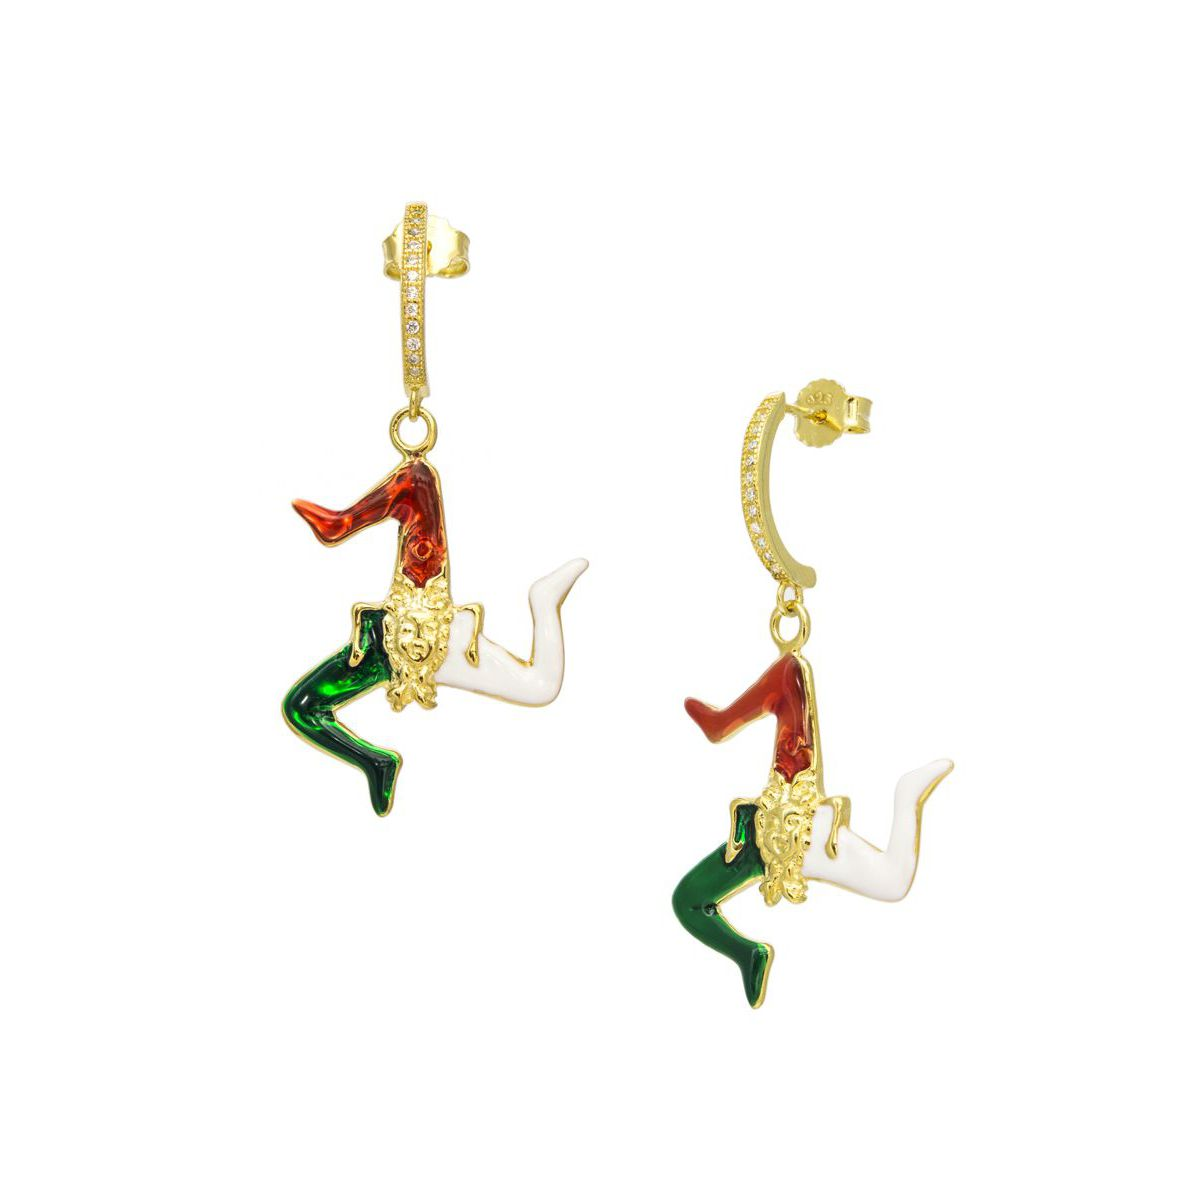 Trinacria gold pendent earrings Gold M'AMI SICILY JEWELS